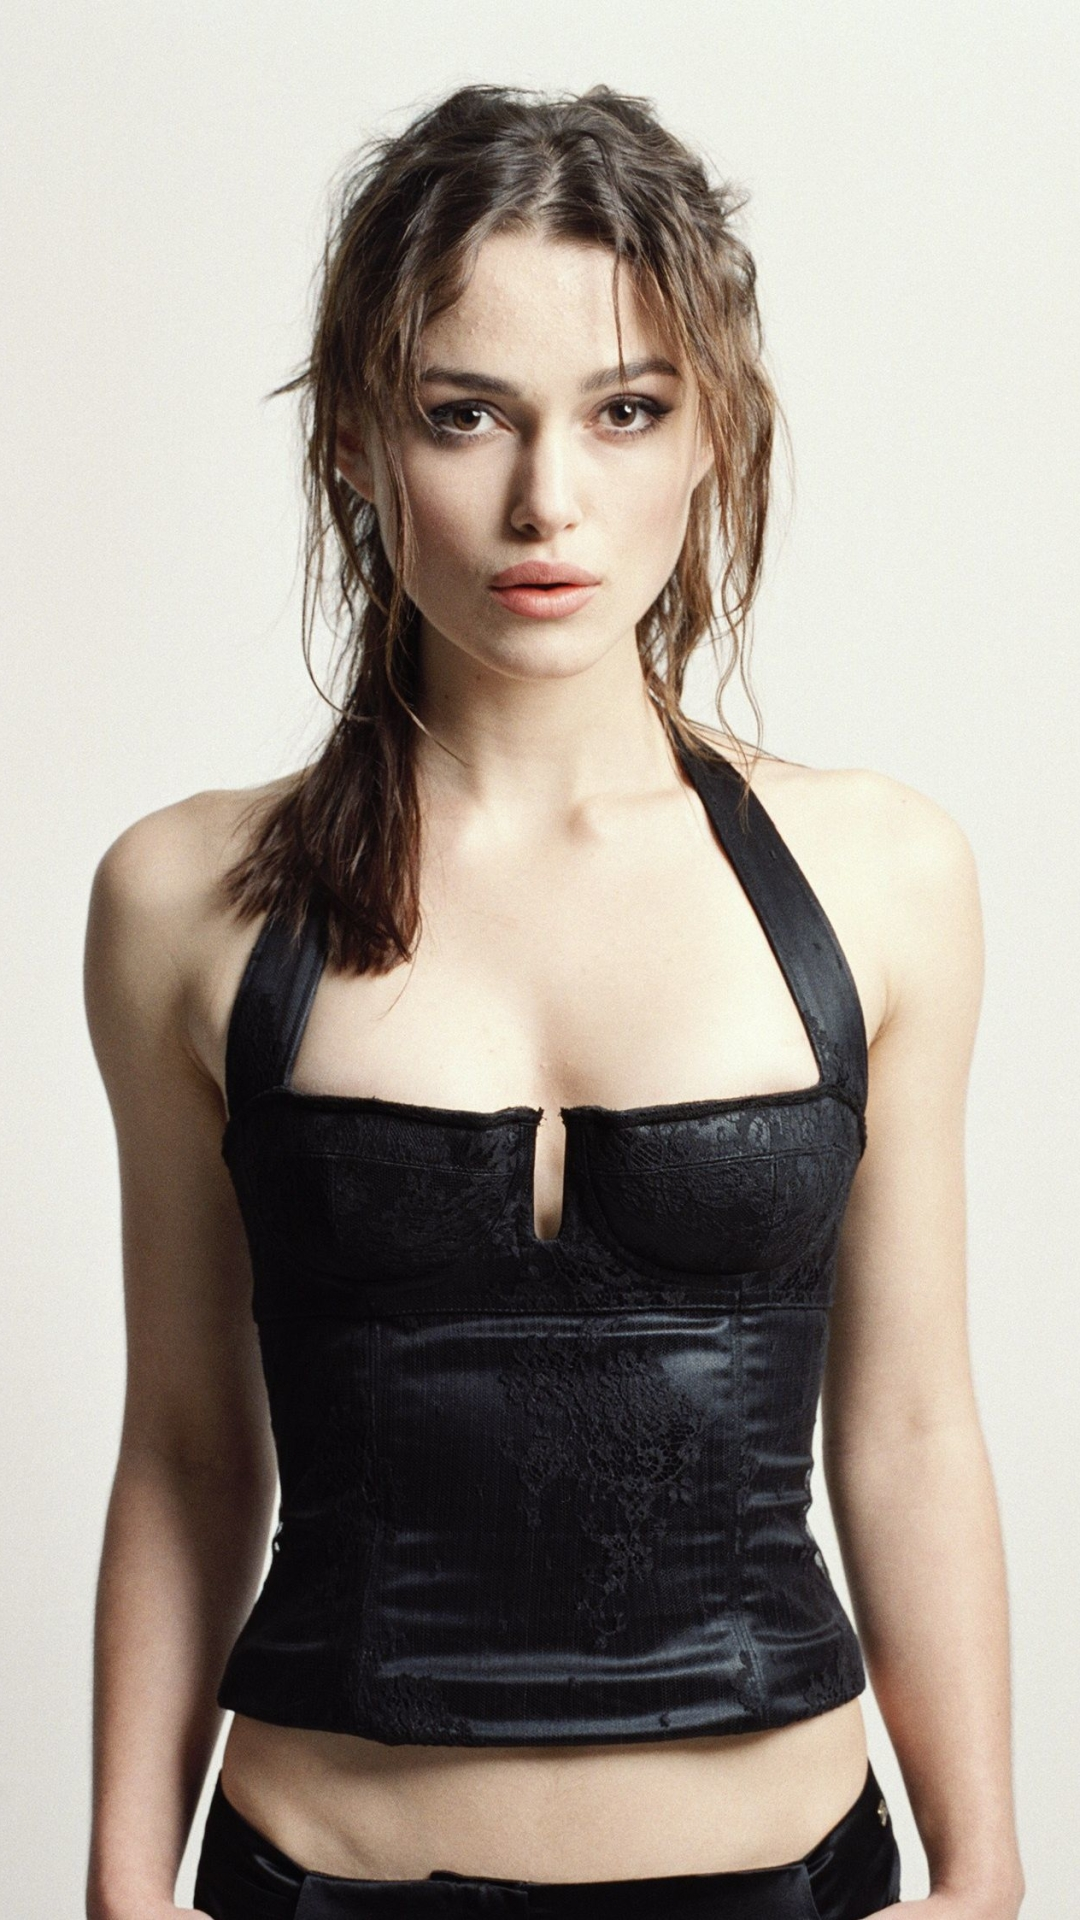 1080x1920 - Keira Knightley Wallpapers 26